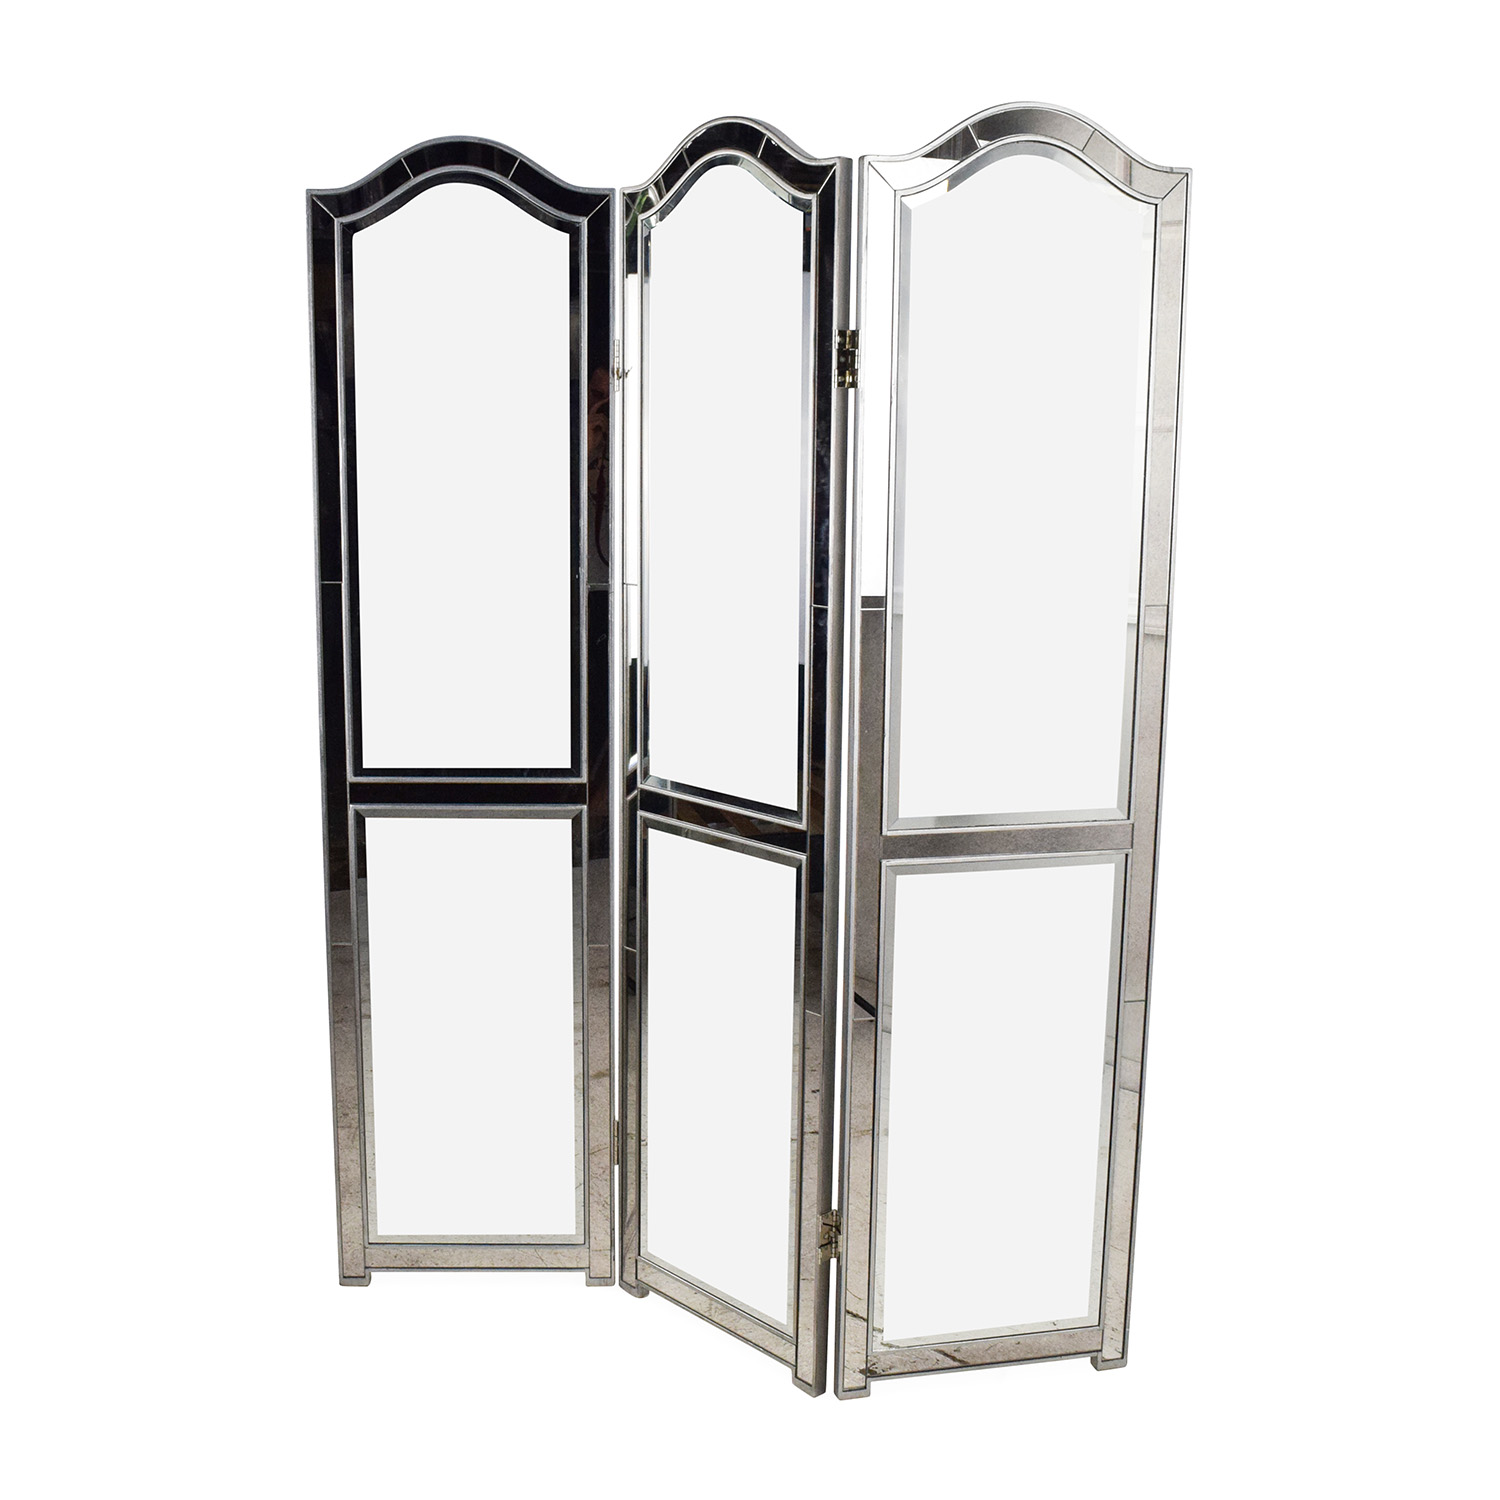 69 Off Pier 1 Imports Pier 1 Hayworth Mirrored Room